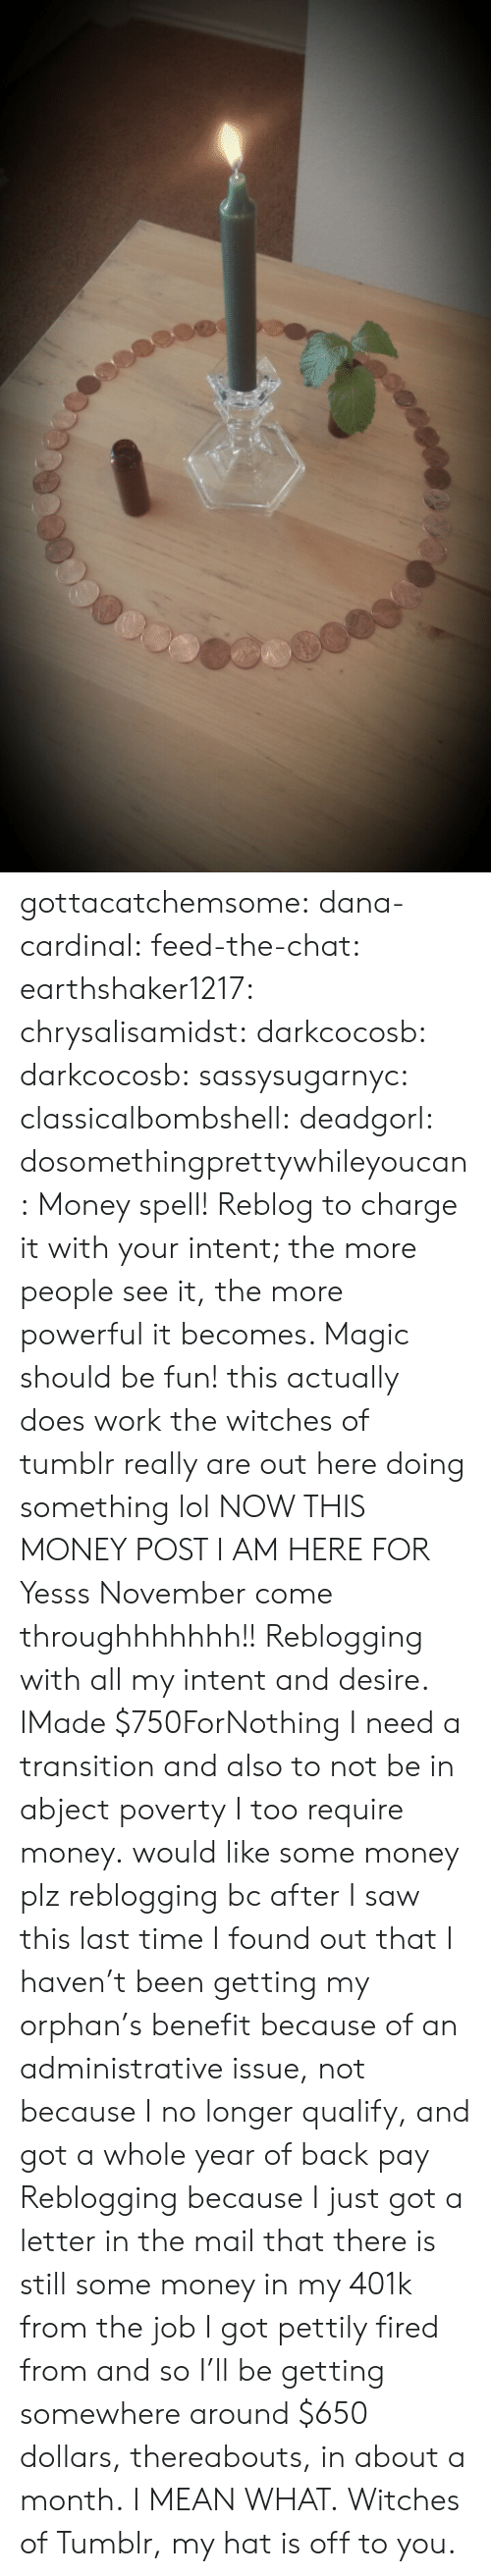 401k: gottacatchemsome: dana-cardinal:  feed-the-chat:  earthshaker1217:  chrysalisamidst:  darkcocosb:  darkcocosb:  sassysugarnyc:  classicalbombshell:  deadgorl:  dosomethingprettywhileyoucan:  Money spell! Reblog to charge it with your intent; the more people see it, the more powerful it becomes. Magic should be fun!  this actually does work the witches of tumblr really are out here doing something lol  NOW THIS MONEY POST I AM HERE FOR  Yesss November come throughhhhhhh!!  Reblogging with all my intent and desire.  IMade $750ForNothing  I need a transition and also to not be in abject poverty  I too require money.  would like some money plz  reblogging bc after I saw this last time I found out that I haven't been getting my orphan's benefit because of an administrative issue, not because I no longer qualify, and got a whole year of back pay  Reblogging because I just got a letter in the mail that there is still some money in my 401k from the job I got pettily fired from and so I'll be getting somewhere around $650 dollars, thereabouts, in about a month. I MEAN WHAT. Witches of Tumblr, my hat is off to you.